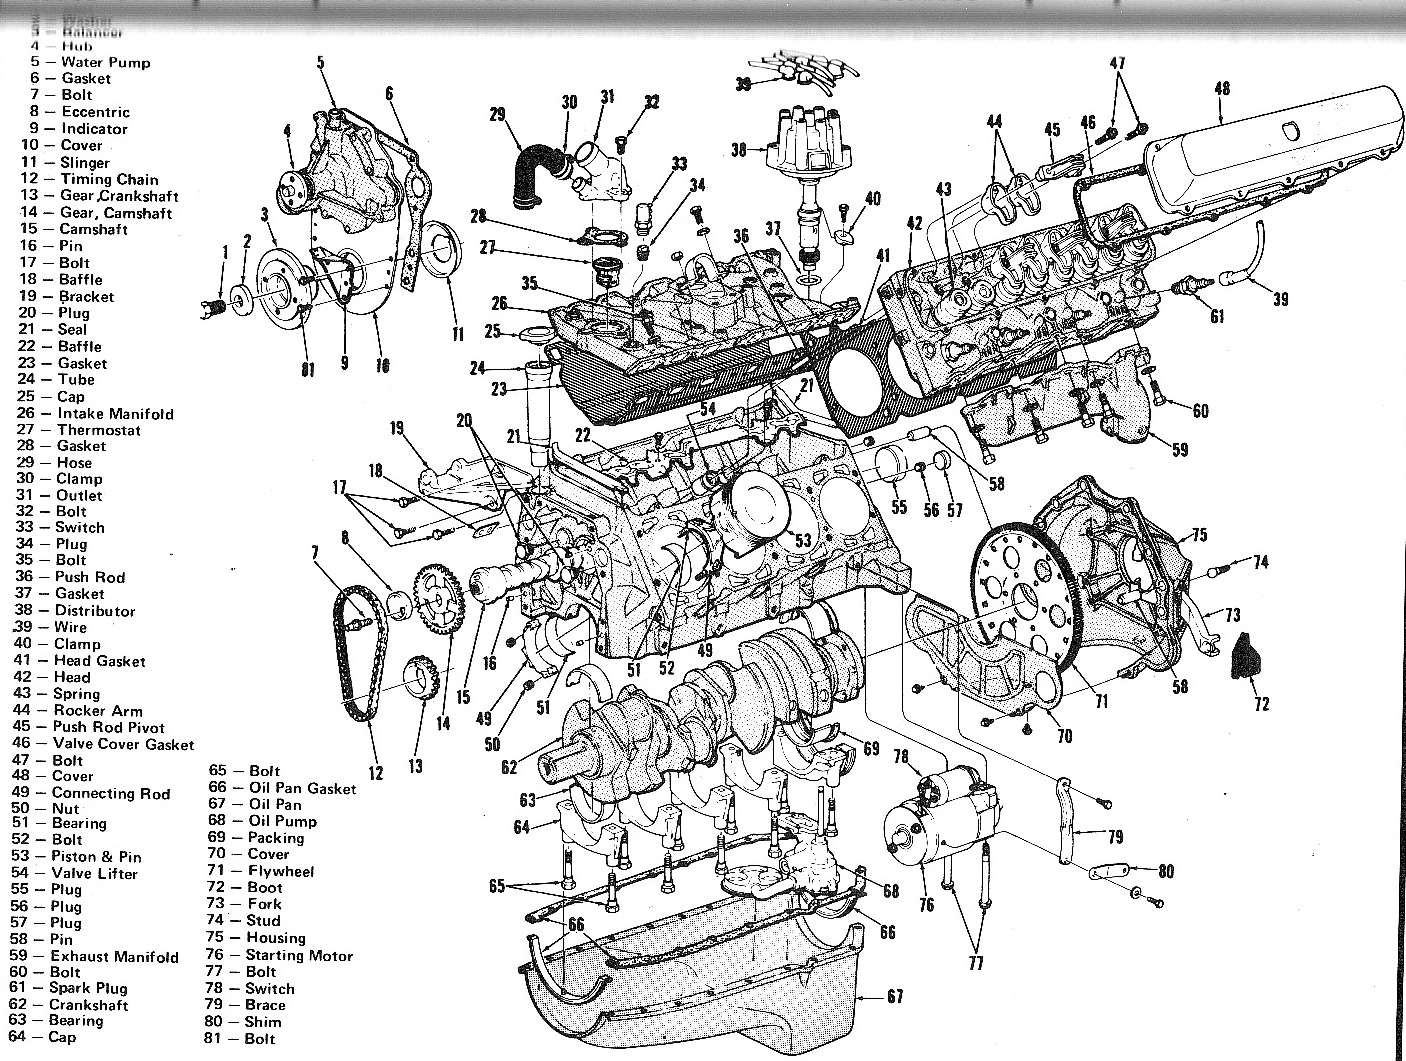 how can get full engine diagrams grabcad questions rh grabcad com engine diagrams for dummies engine diagrams ford